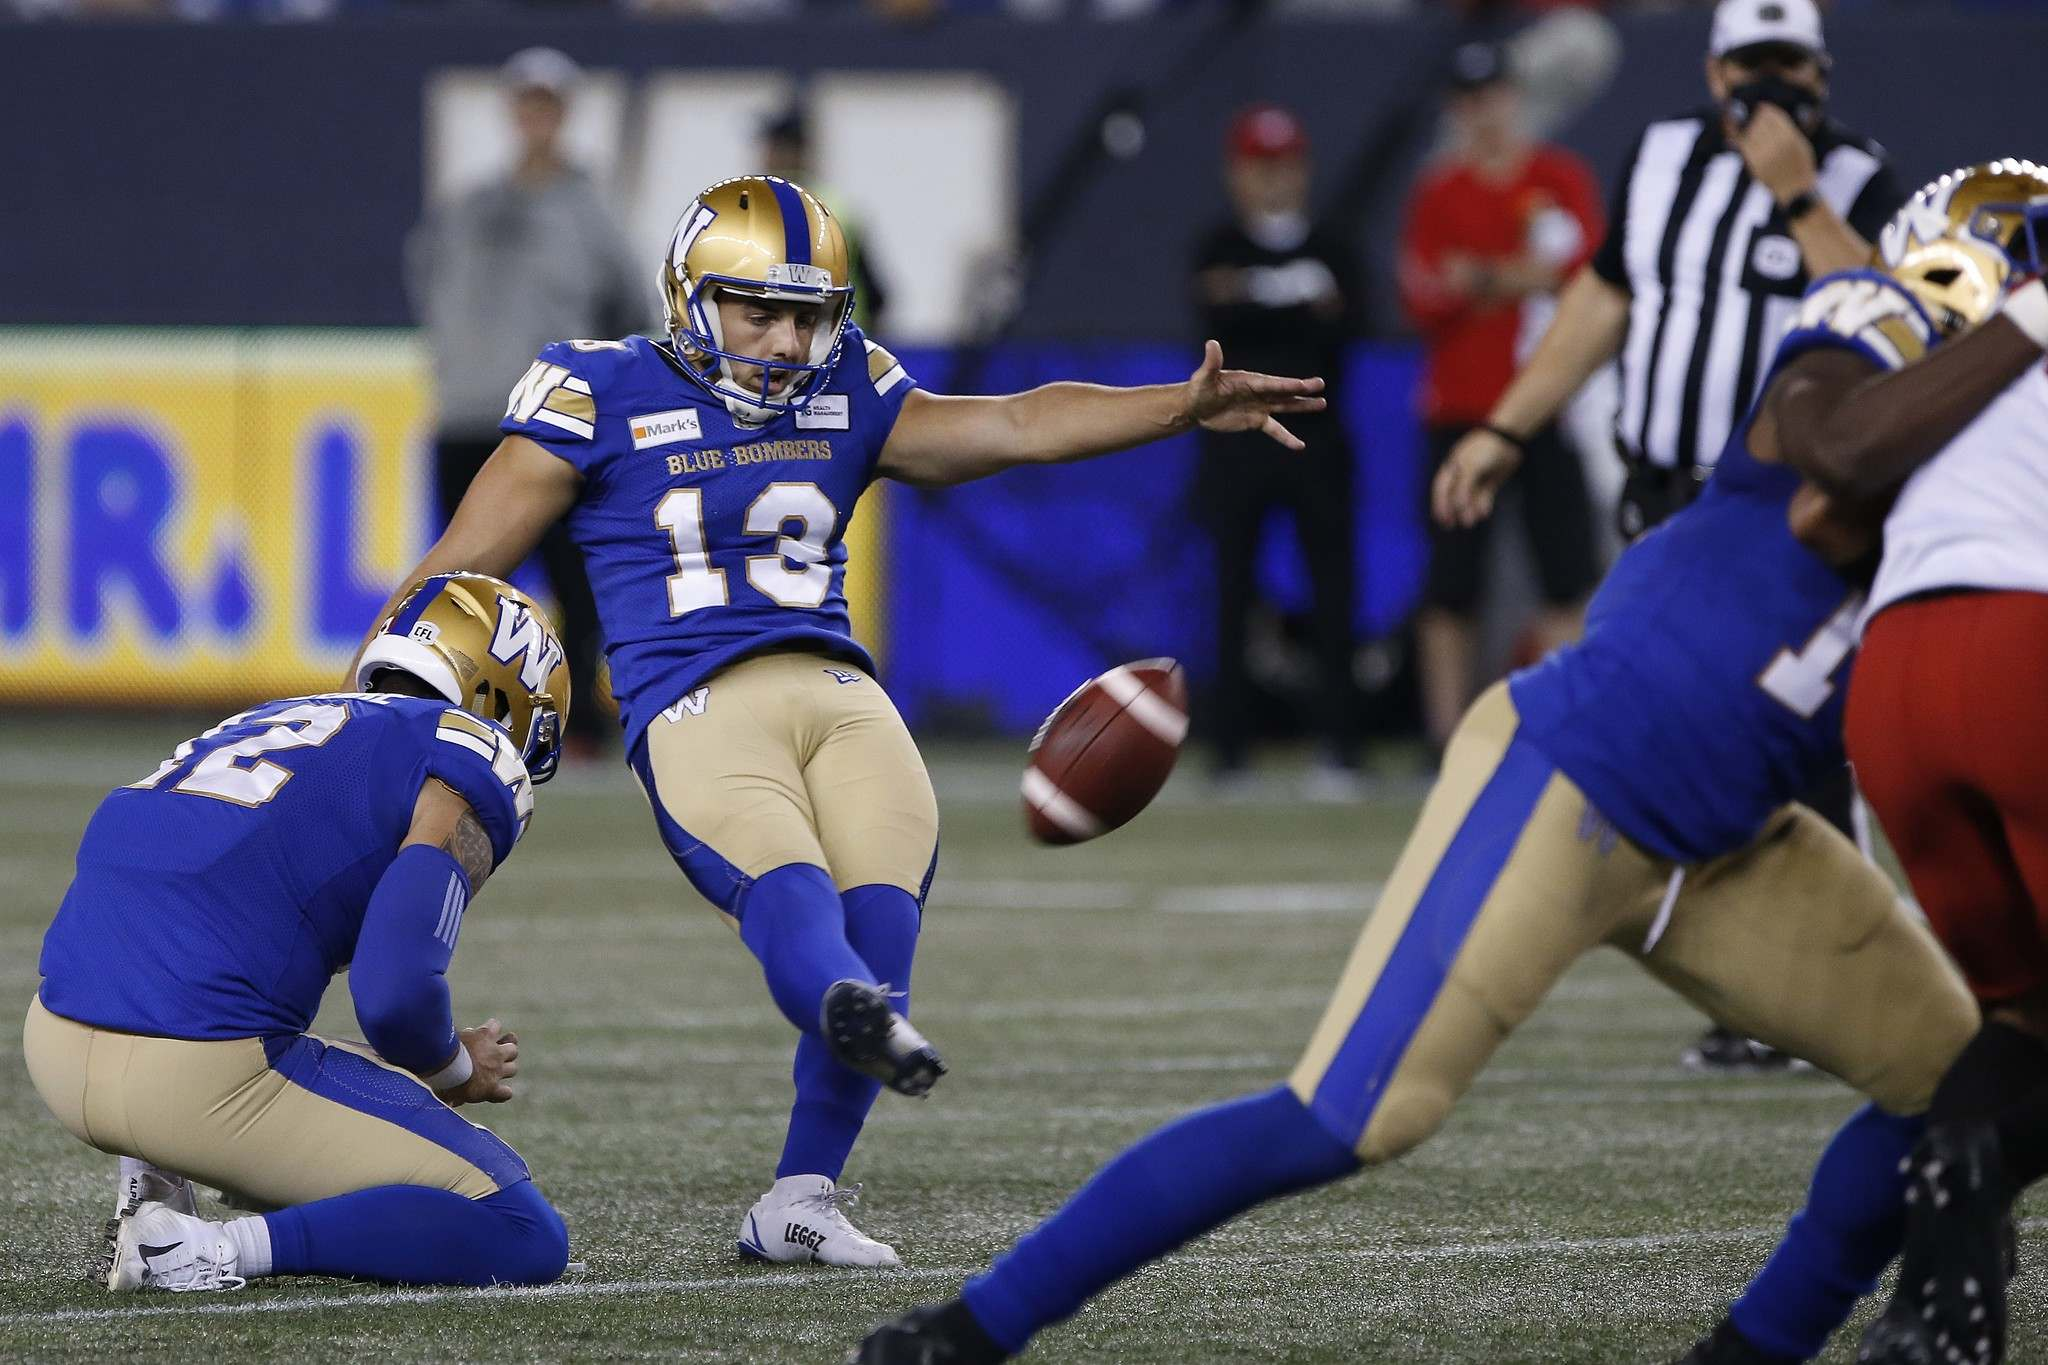 Marc Liegghio kicked four field goals during Sunday's game. (John Woods / The Canadian Press)